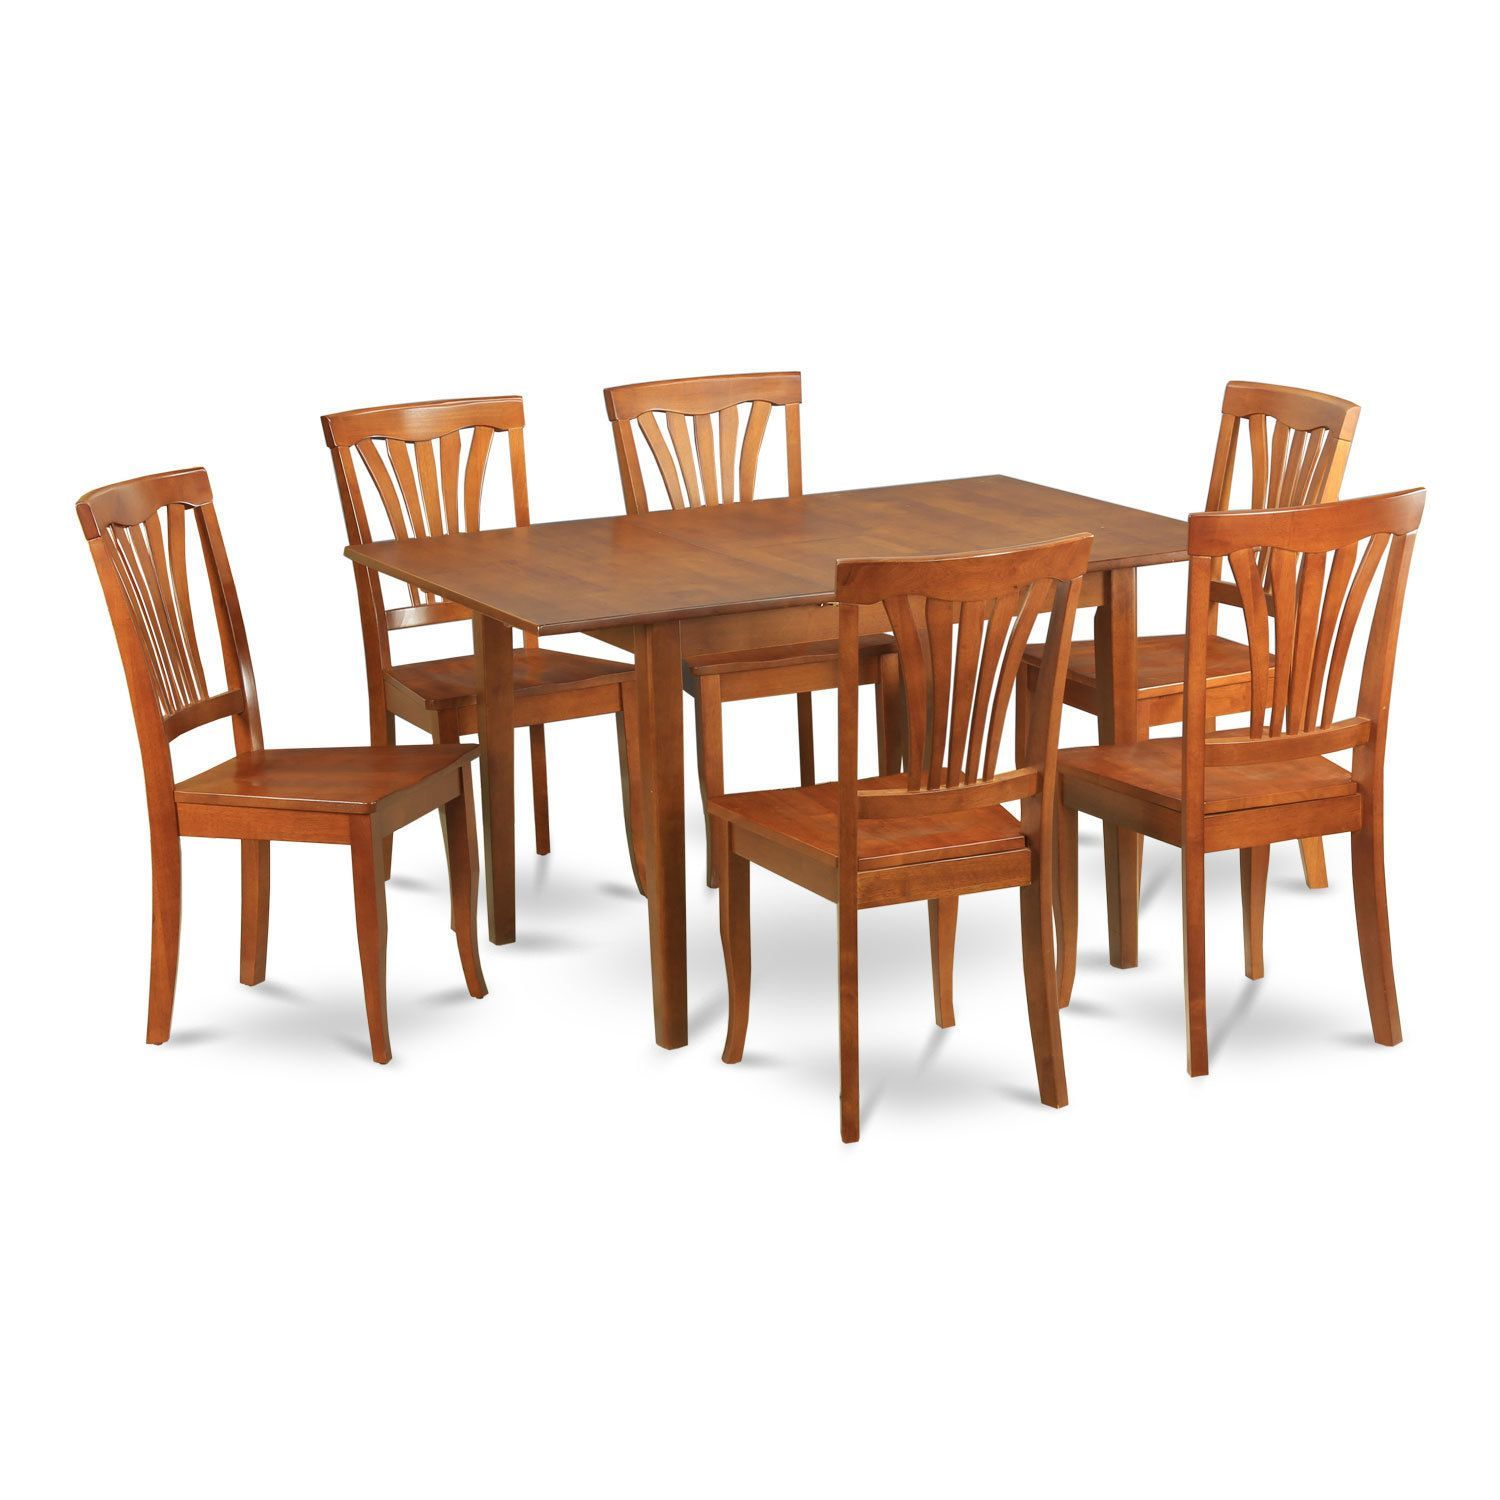 7 Piece Dinette Set For Small Spaces Small Kitchen Table And 6 Kitchen  Chairs